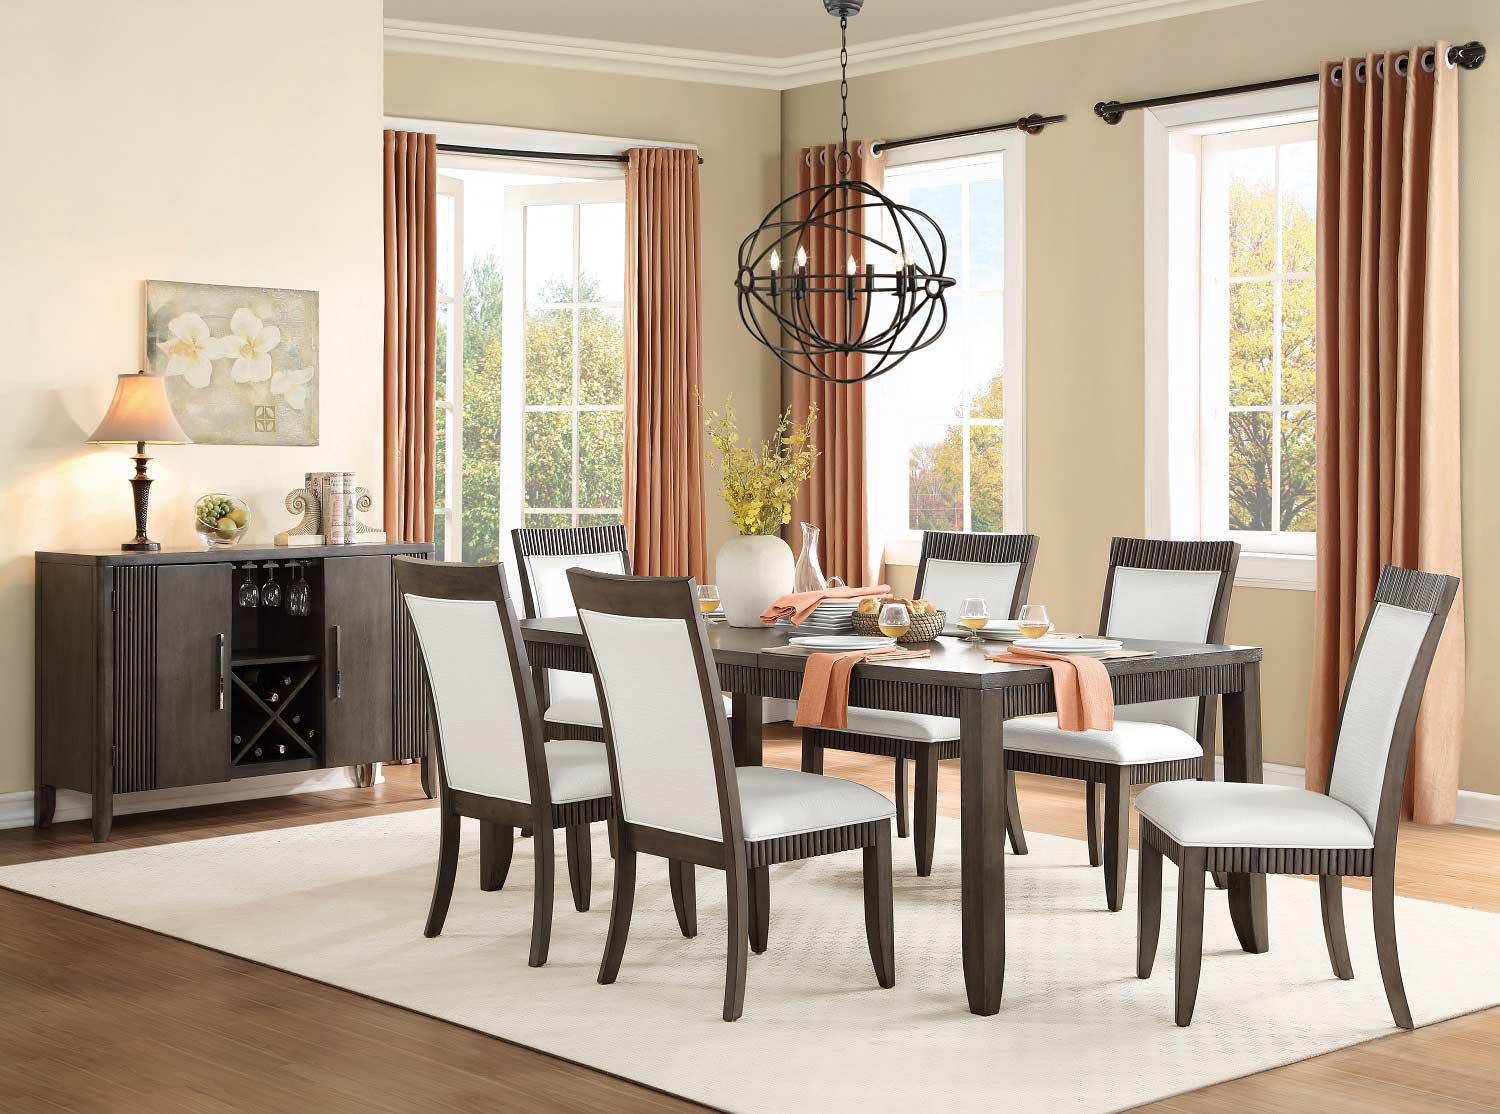 Homelegance Piqua Dining Set - Grey